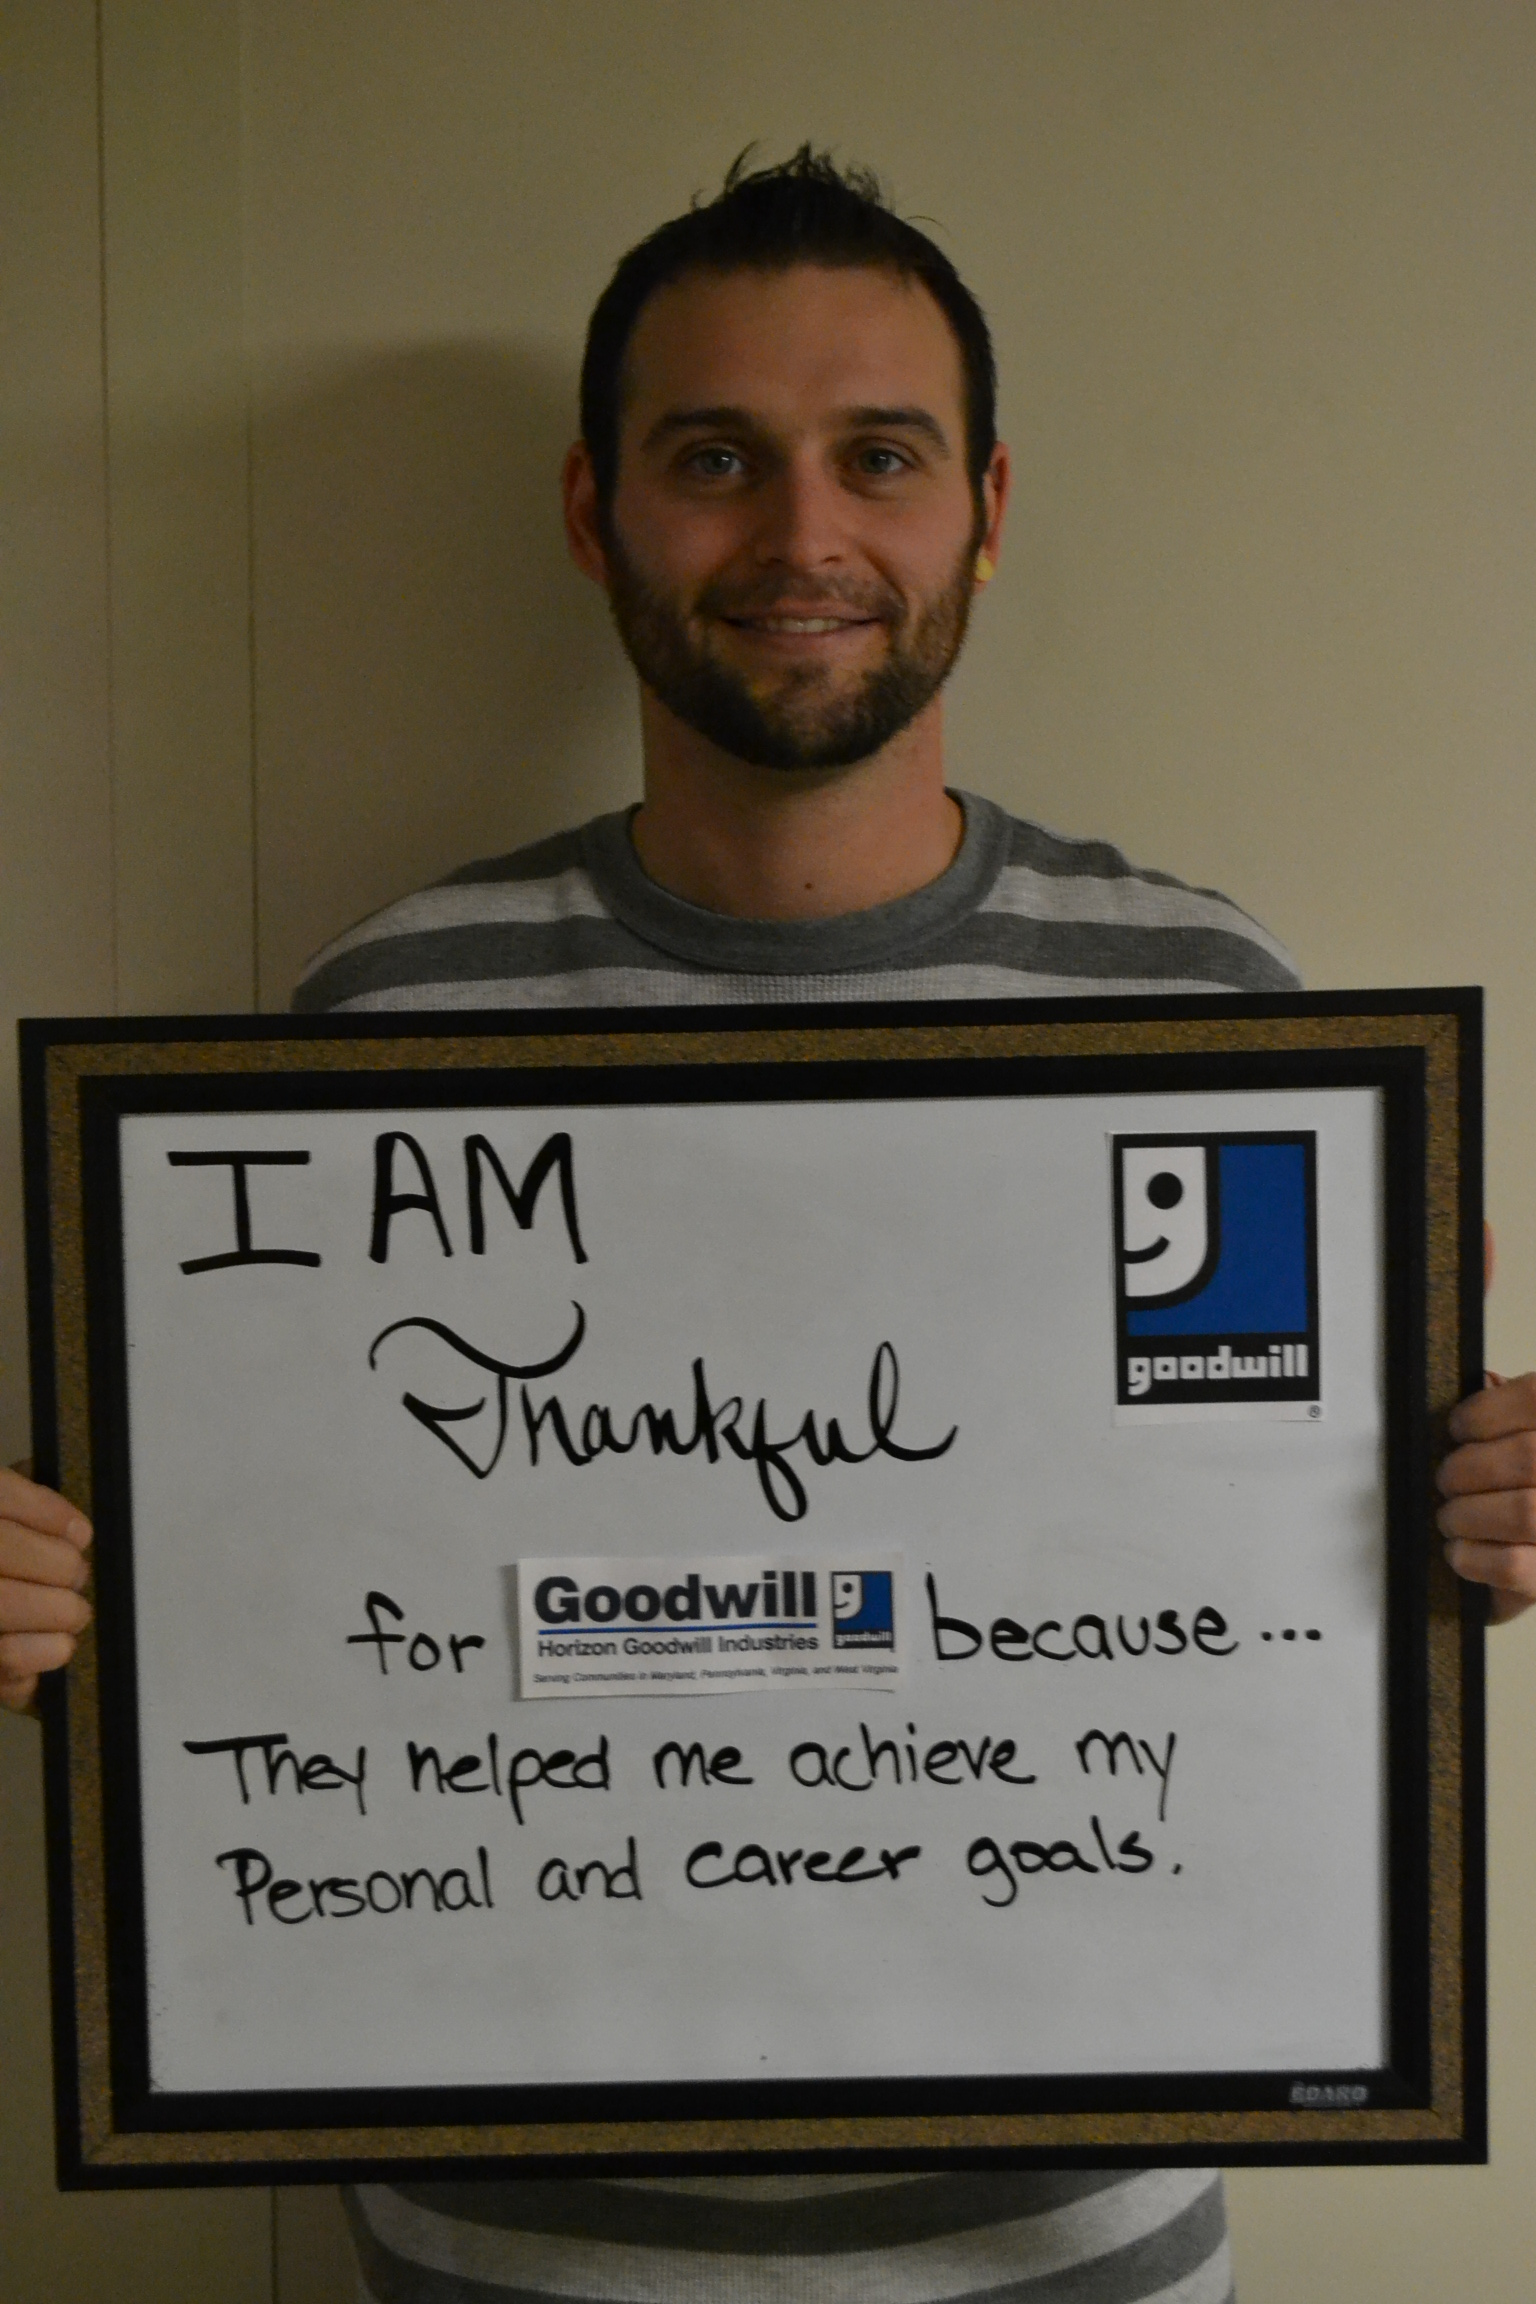 Horizon Goodwill Helped Me Achieve My Personal & Career Goals